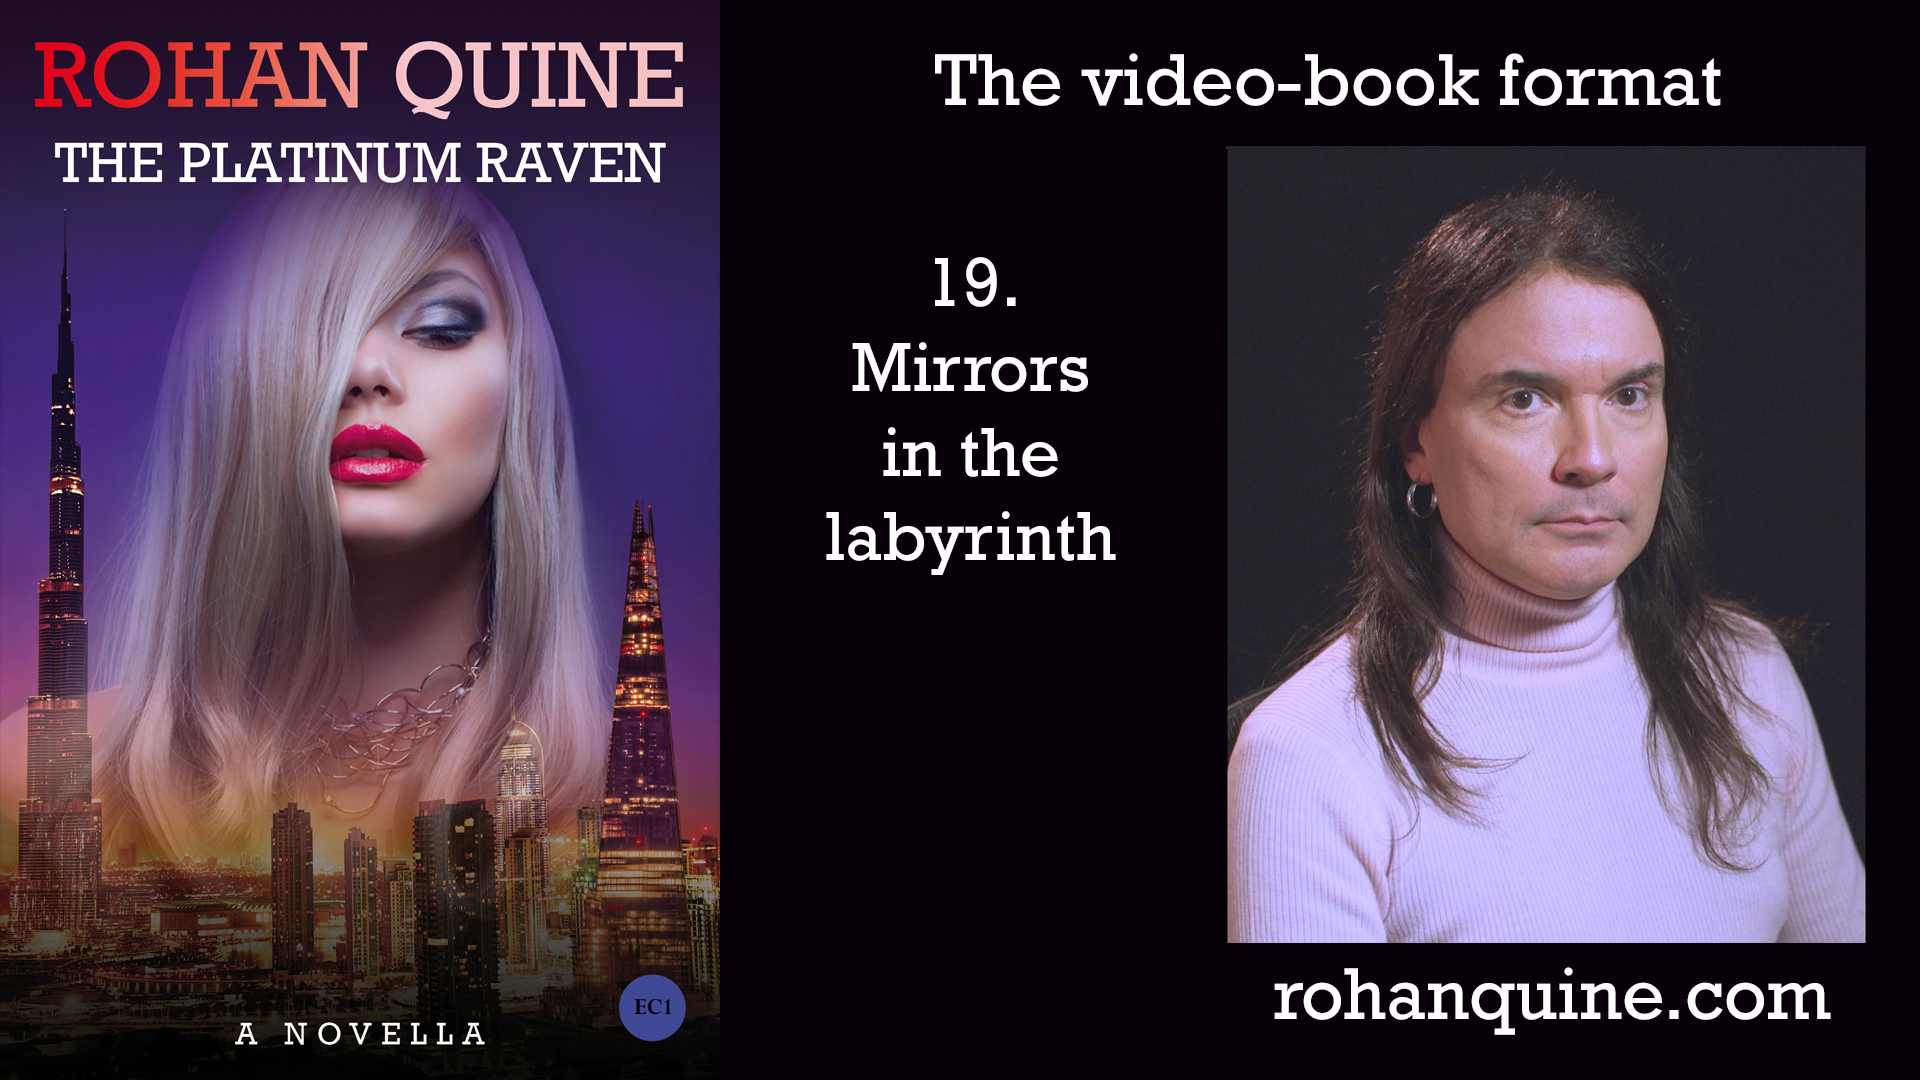 THE PLATINUM RAVEN by Rohan Quine - video-book format - chapter 19